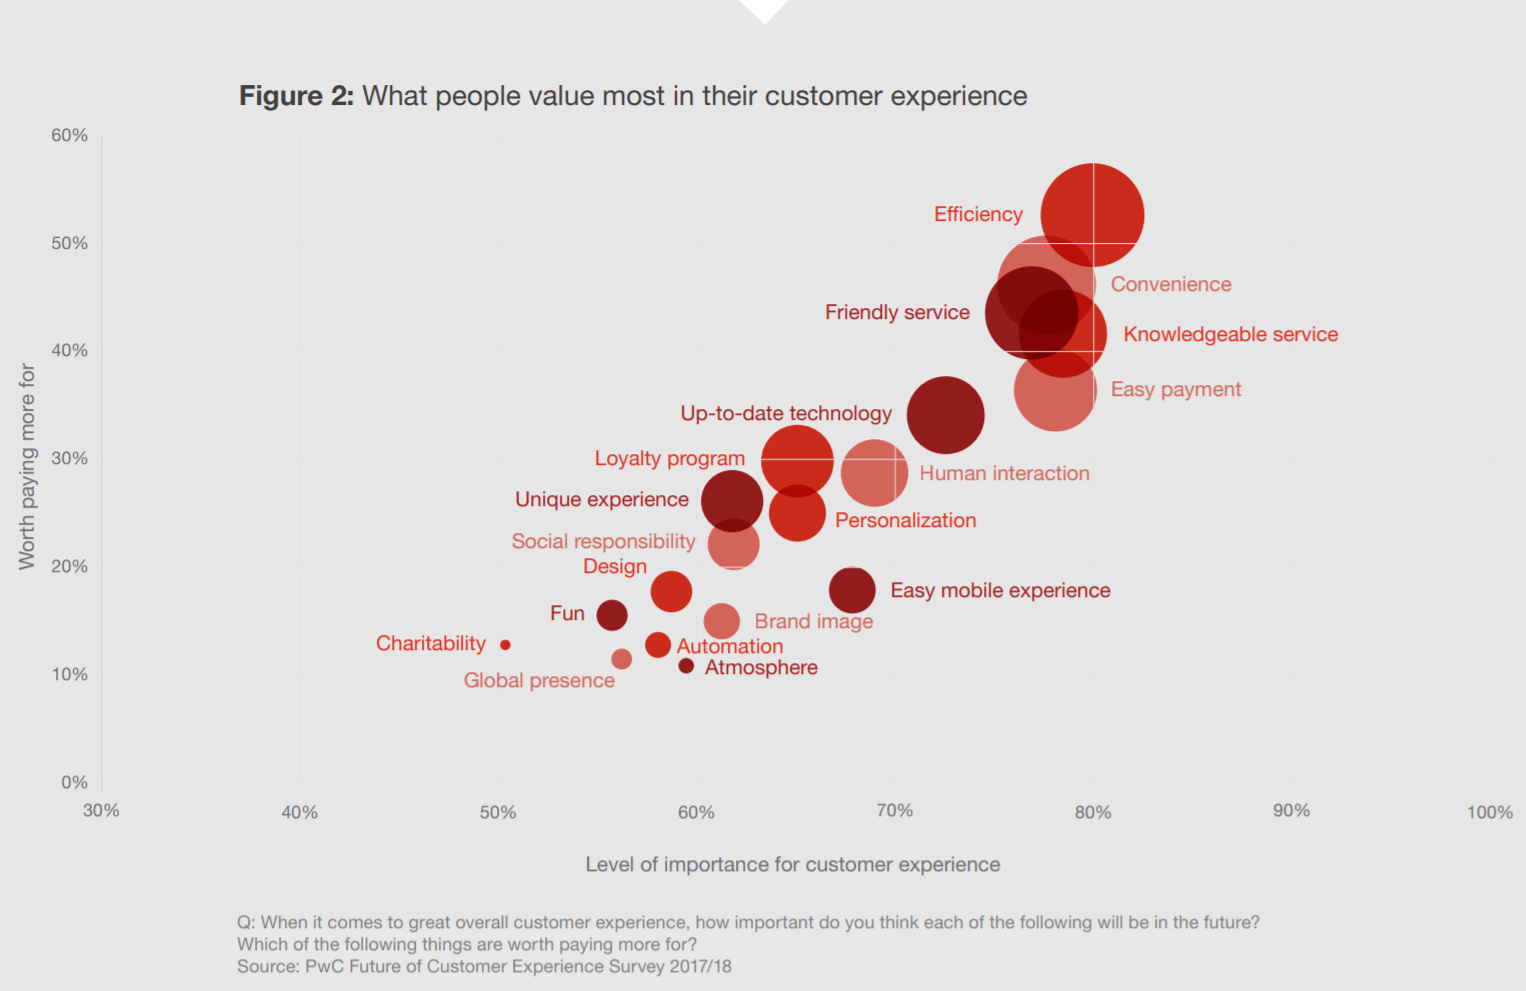 Most Valued Aspects of Customer Experience